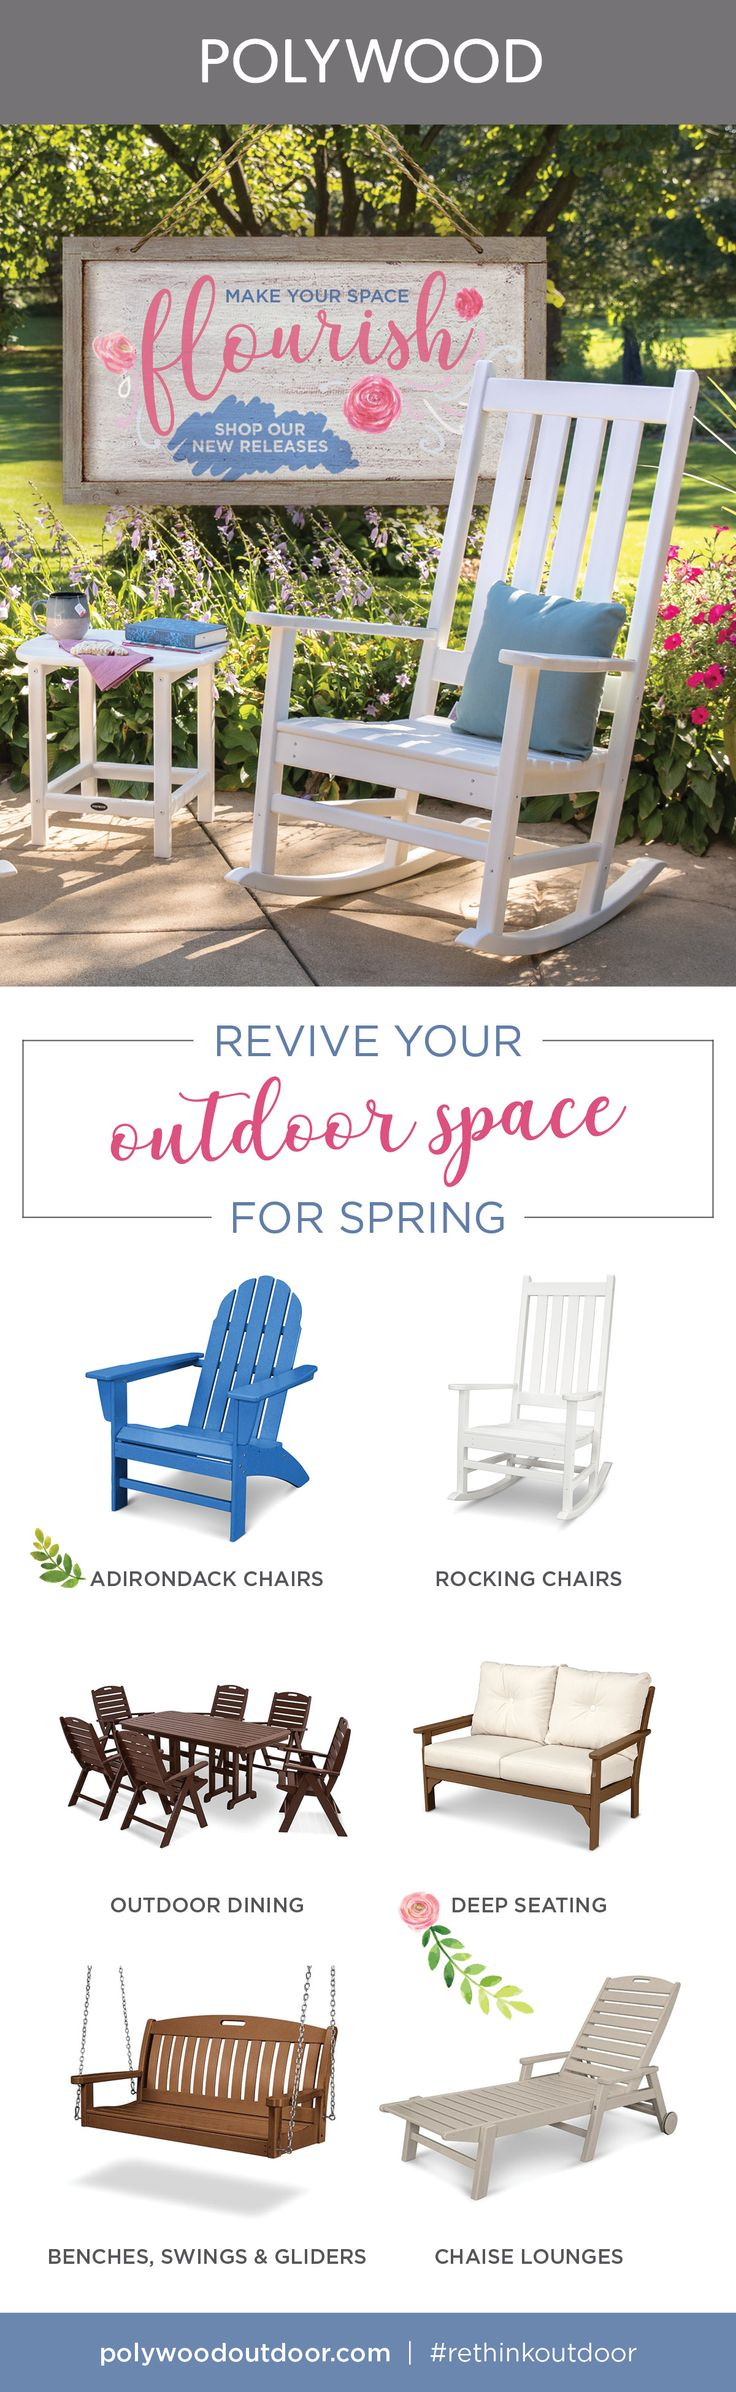 Prepare for spring with our newest releases, including our Limited Edition Adirondack Chairs, and make this season your best yet!